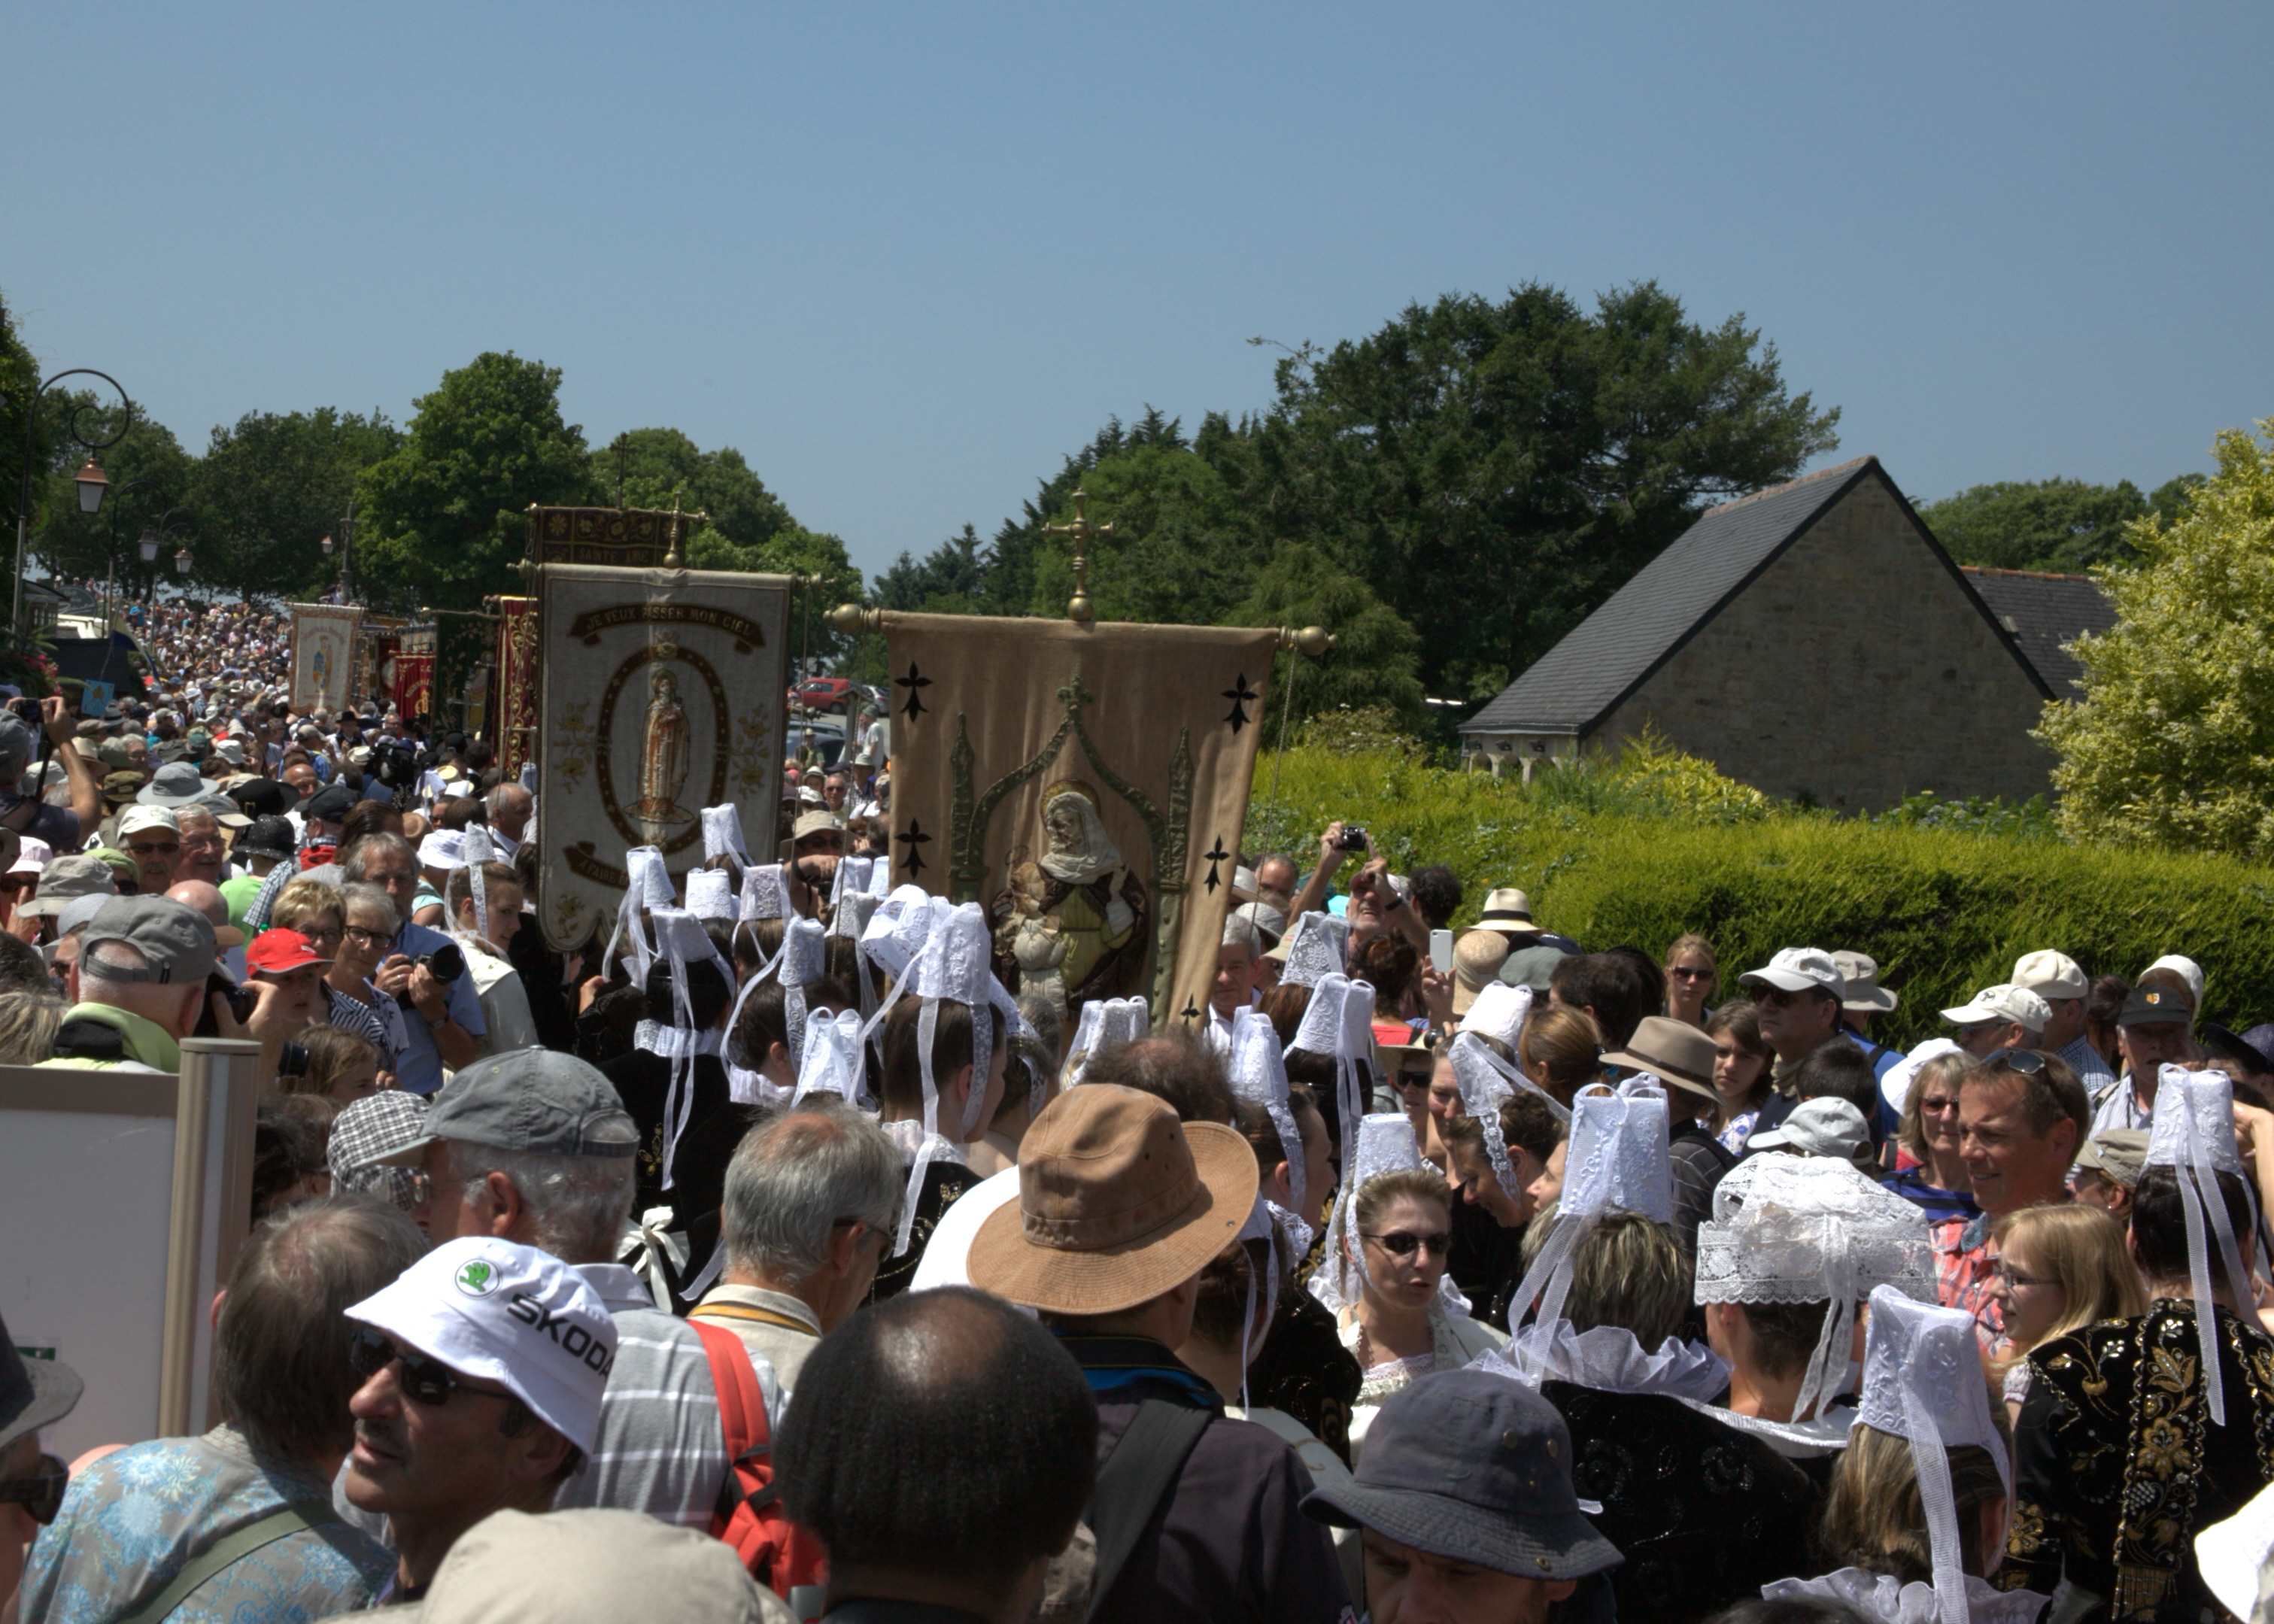 Participants set out at the start of the 14km procession through the breton countryside